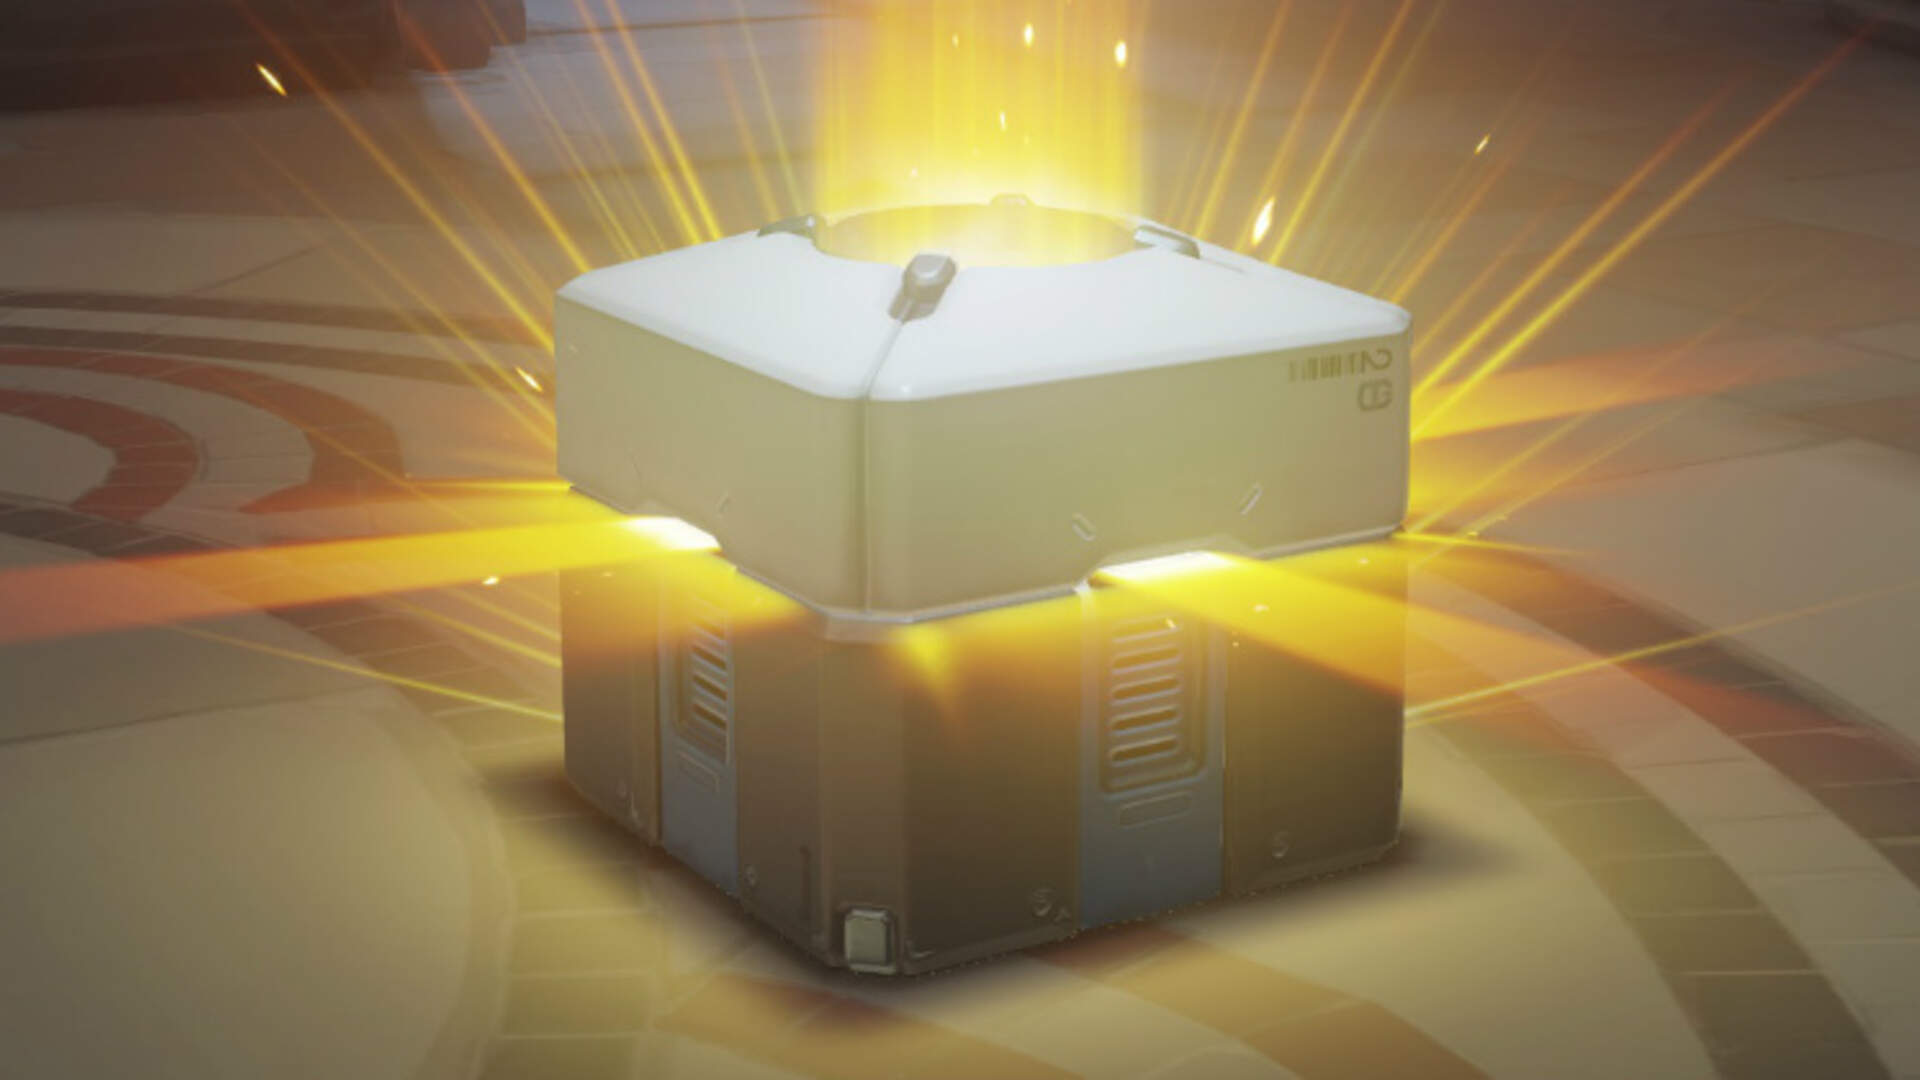 Overwatch: Loot Boxes, Skins, and Sheer Luck